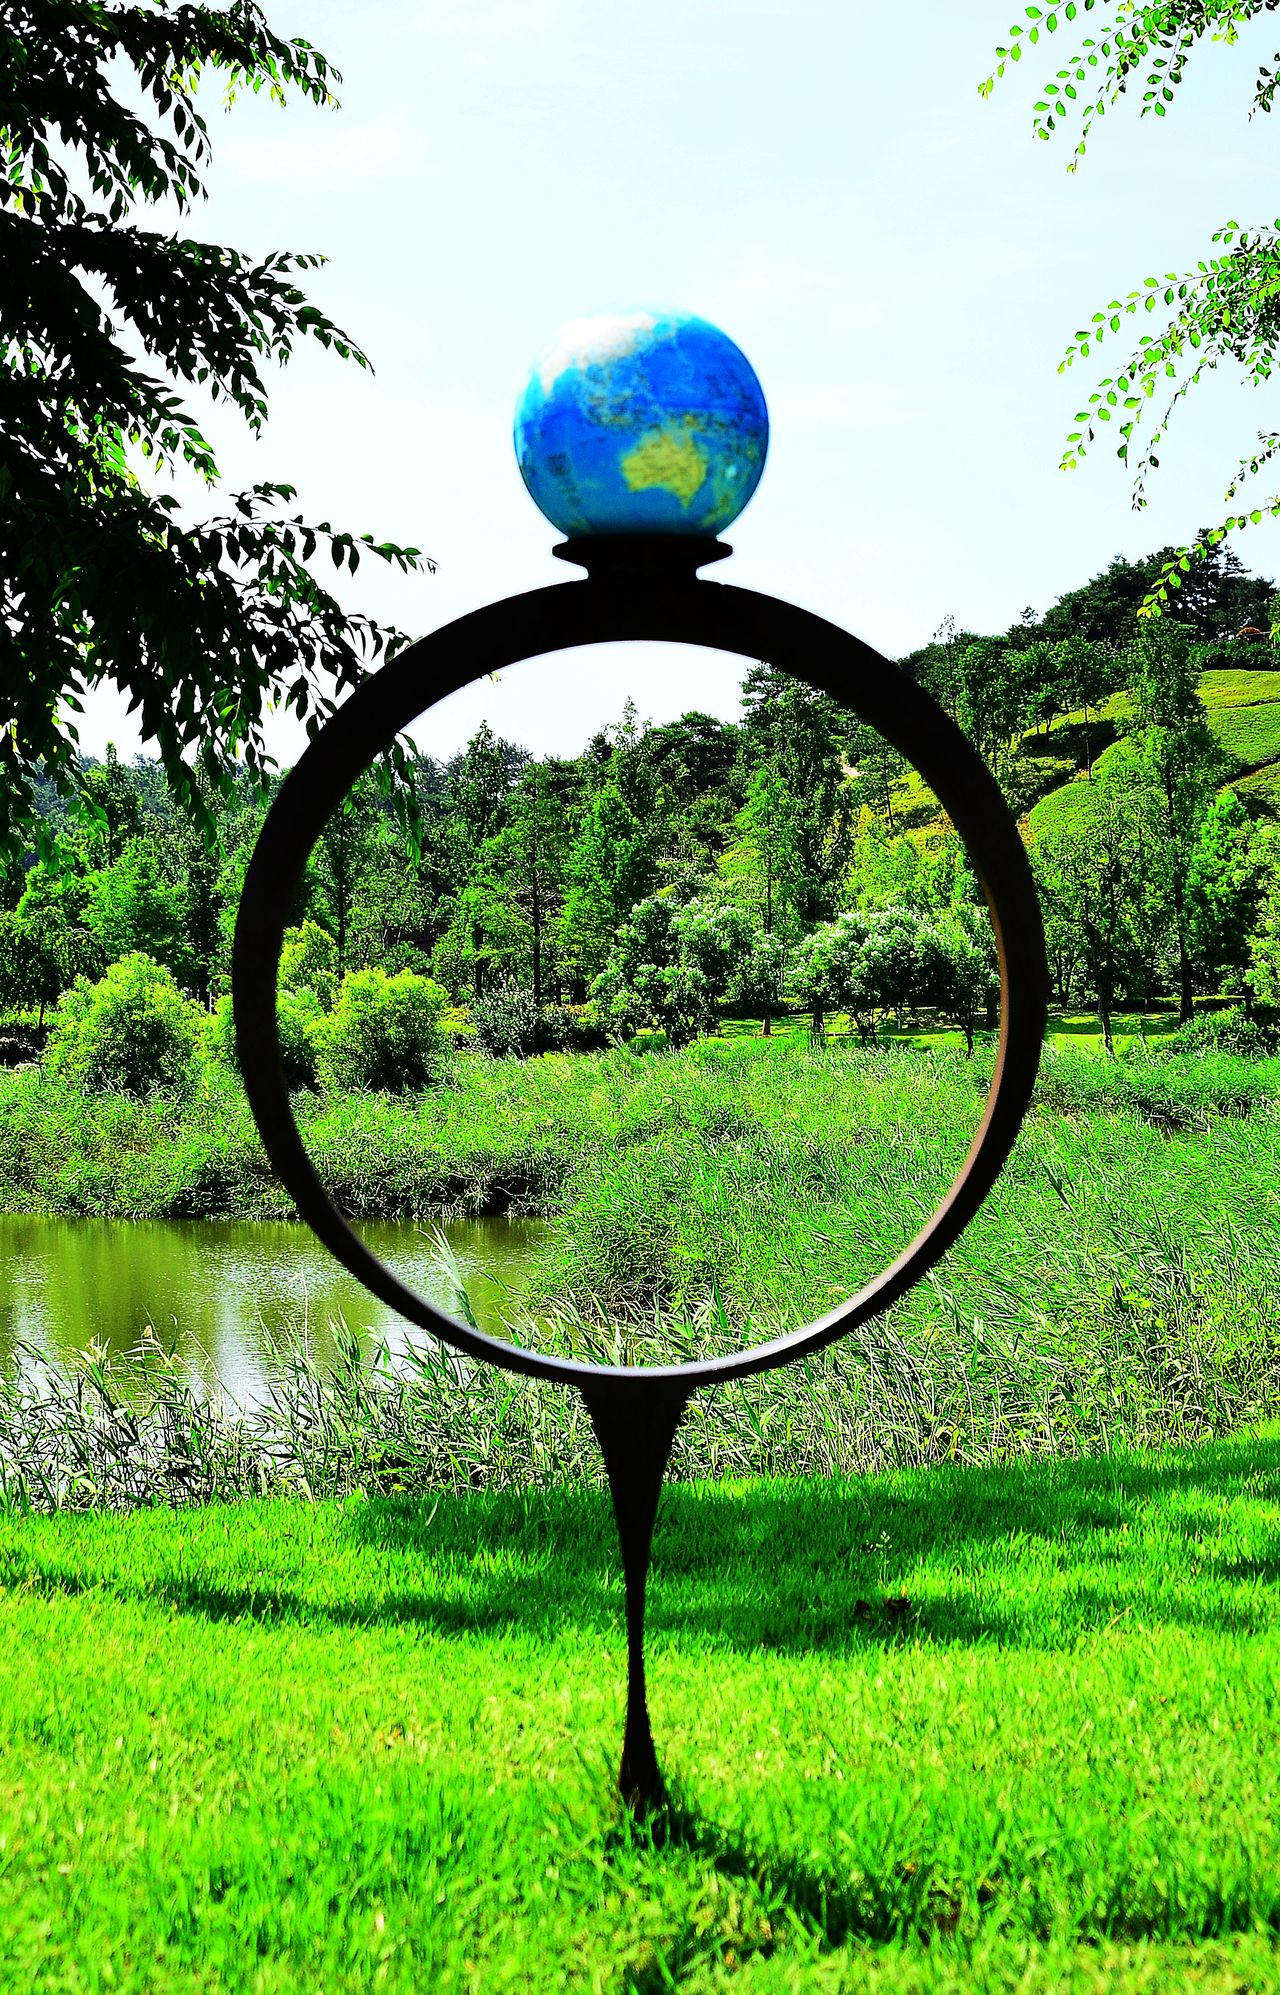 International Garden Exposition Suncheon Beauty In Nature Blue Circle Close-up Garden Garden Architecture Garden Photography Grassy Green Green Color Korea Garden Nature Park Scenics Sky Sphere Tree